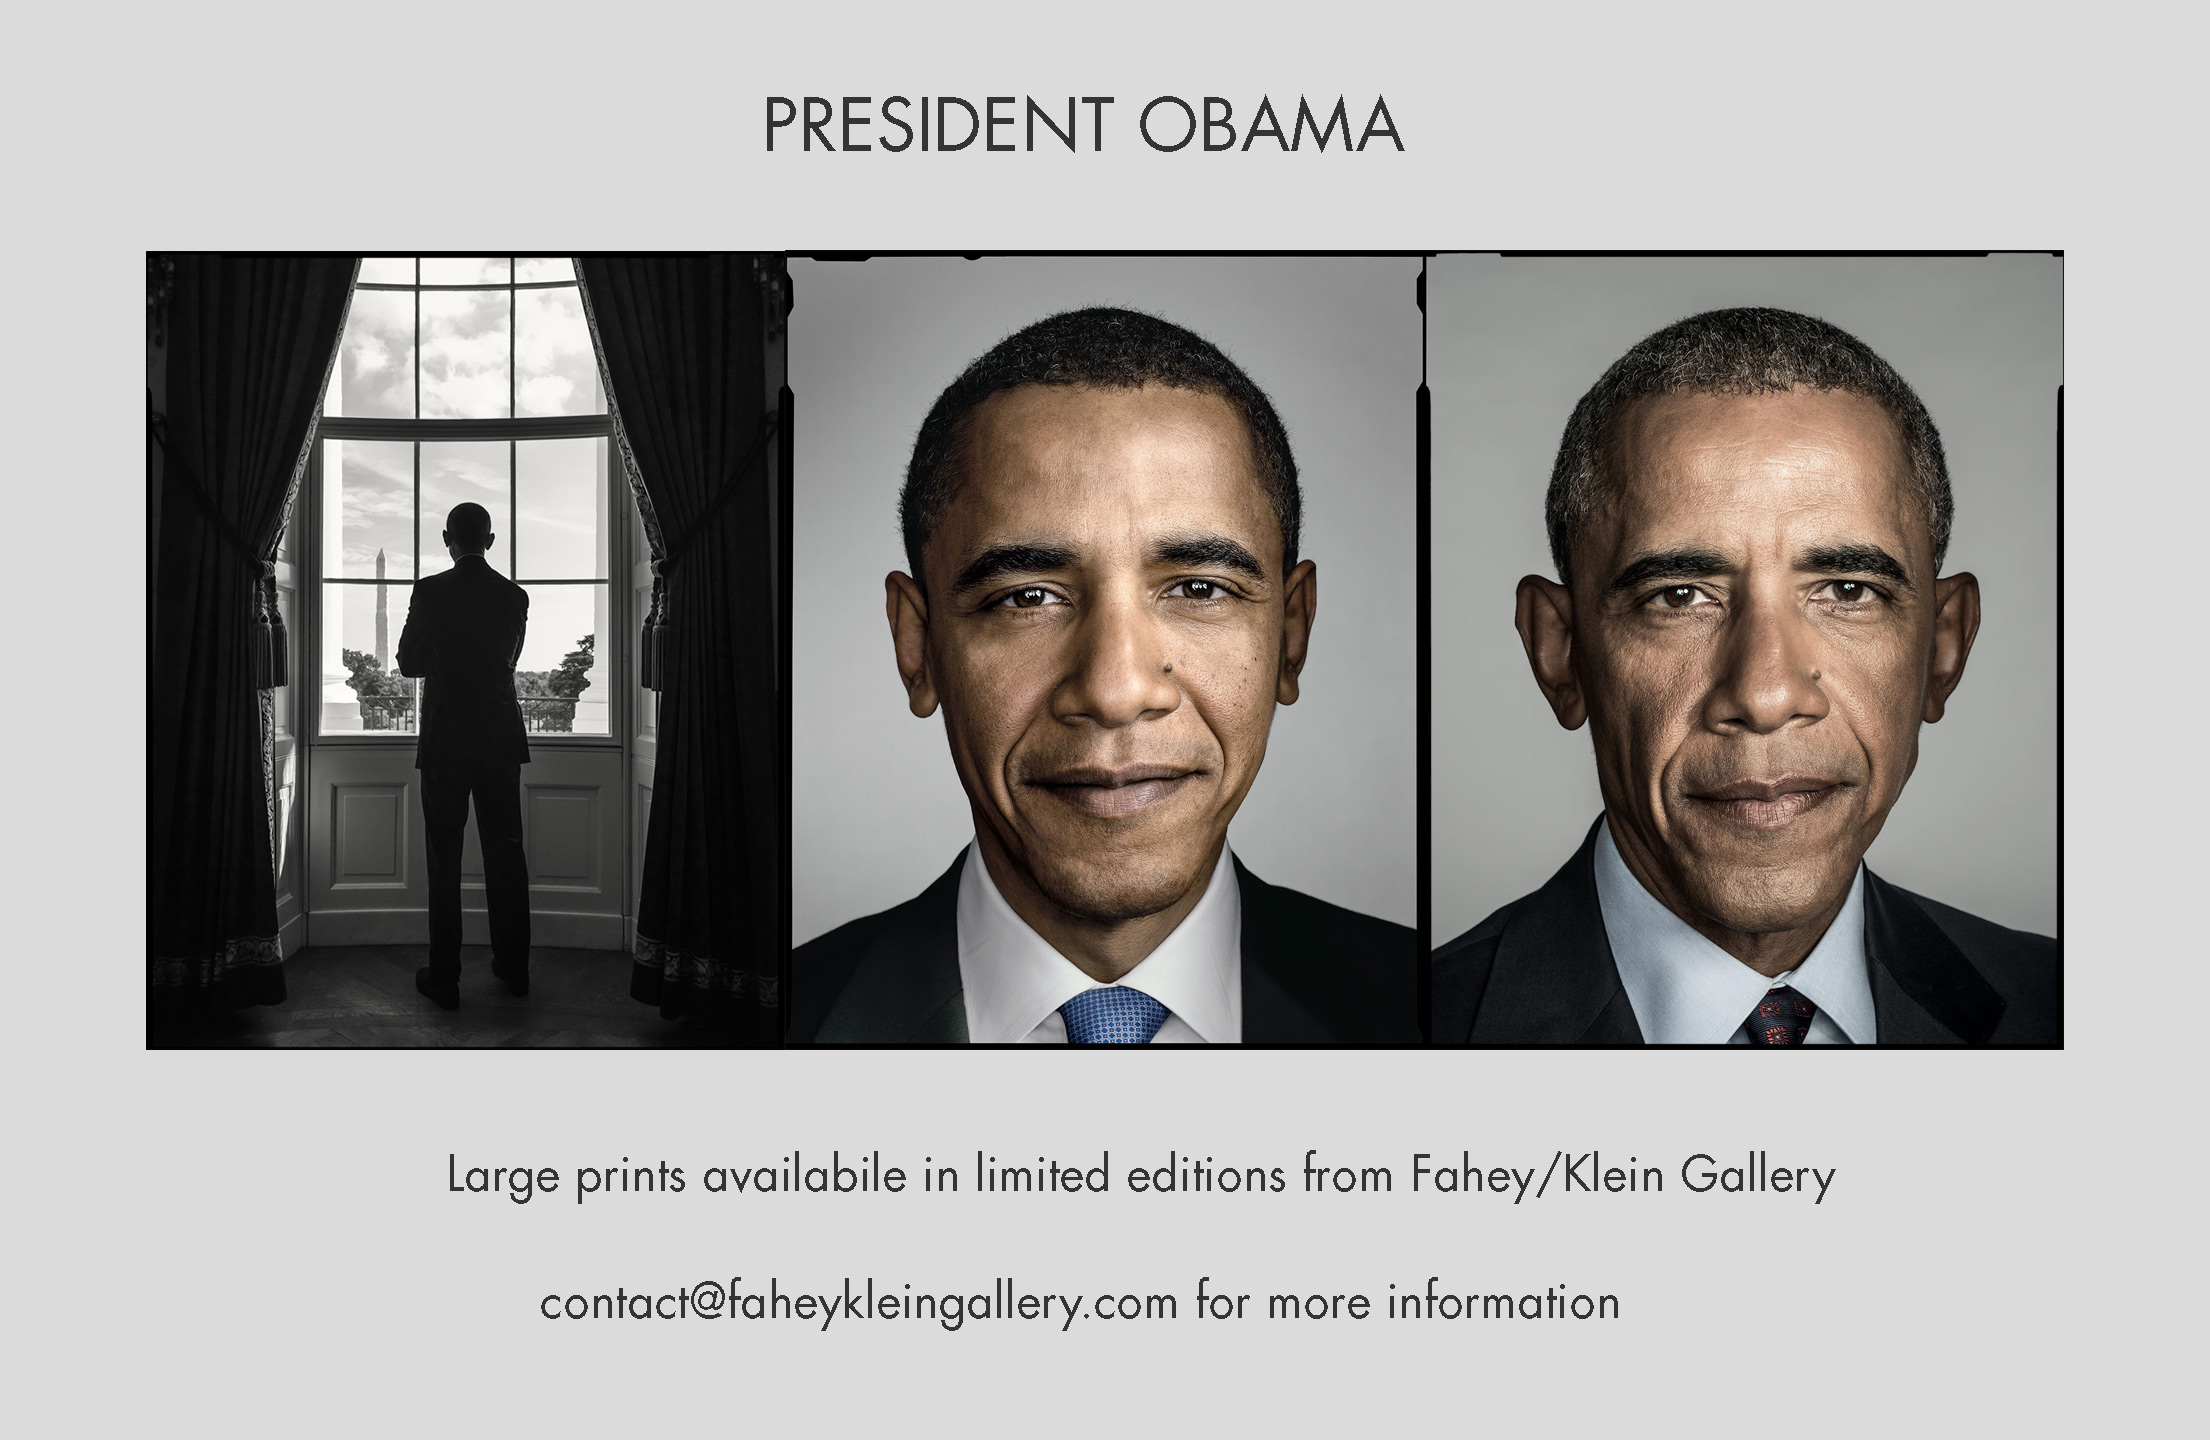 obama-website-prints-for-sale2